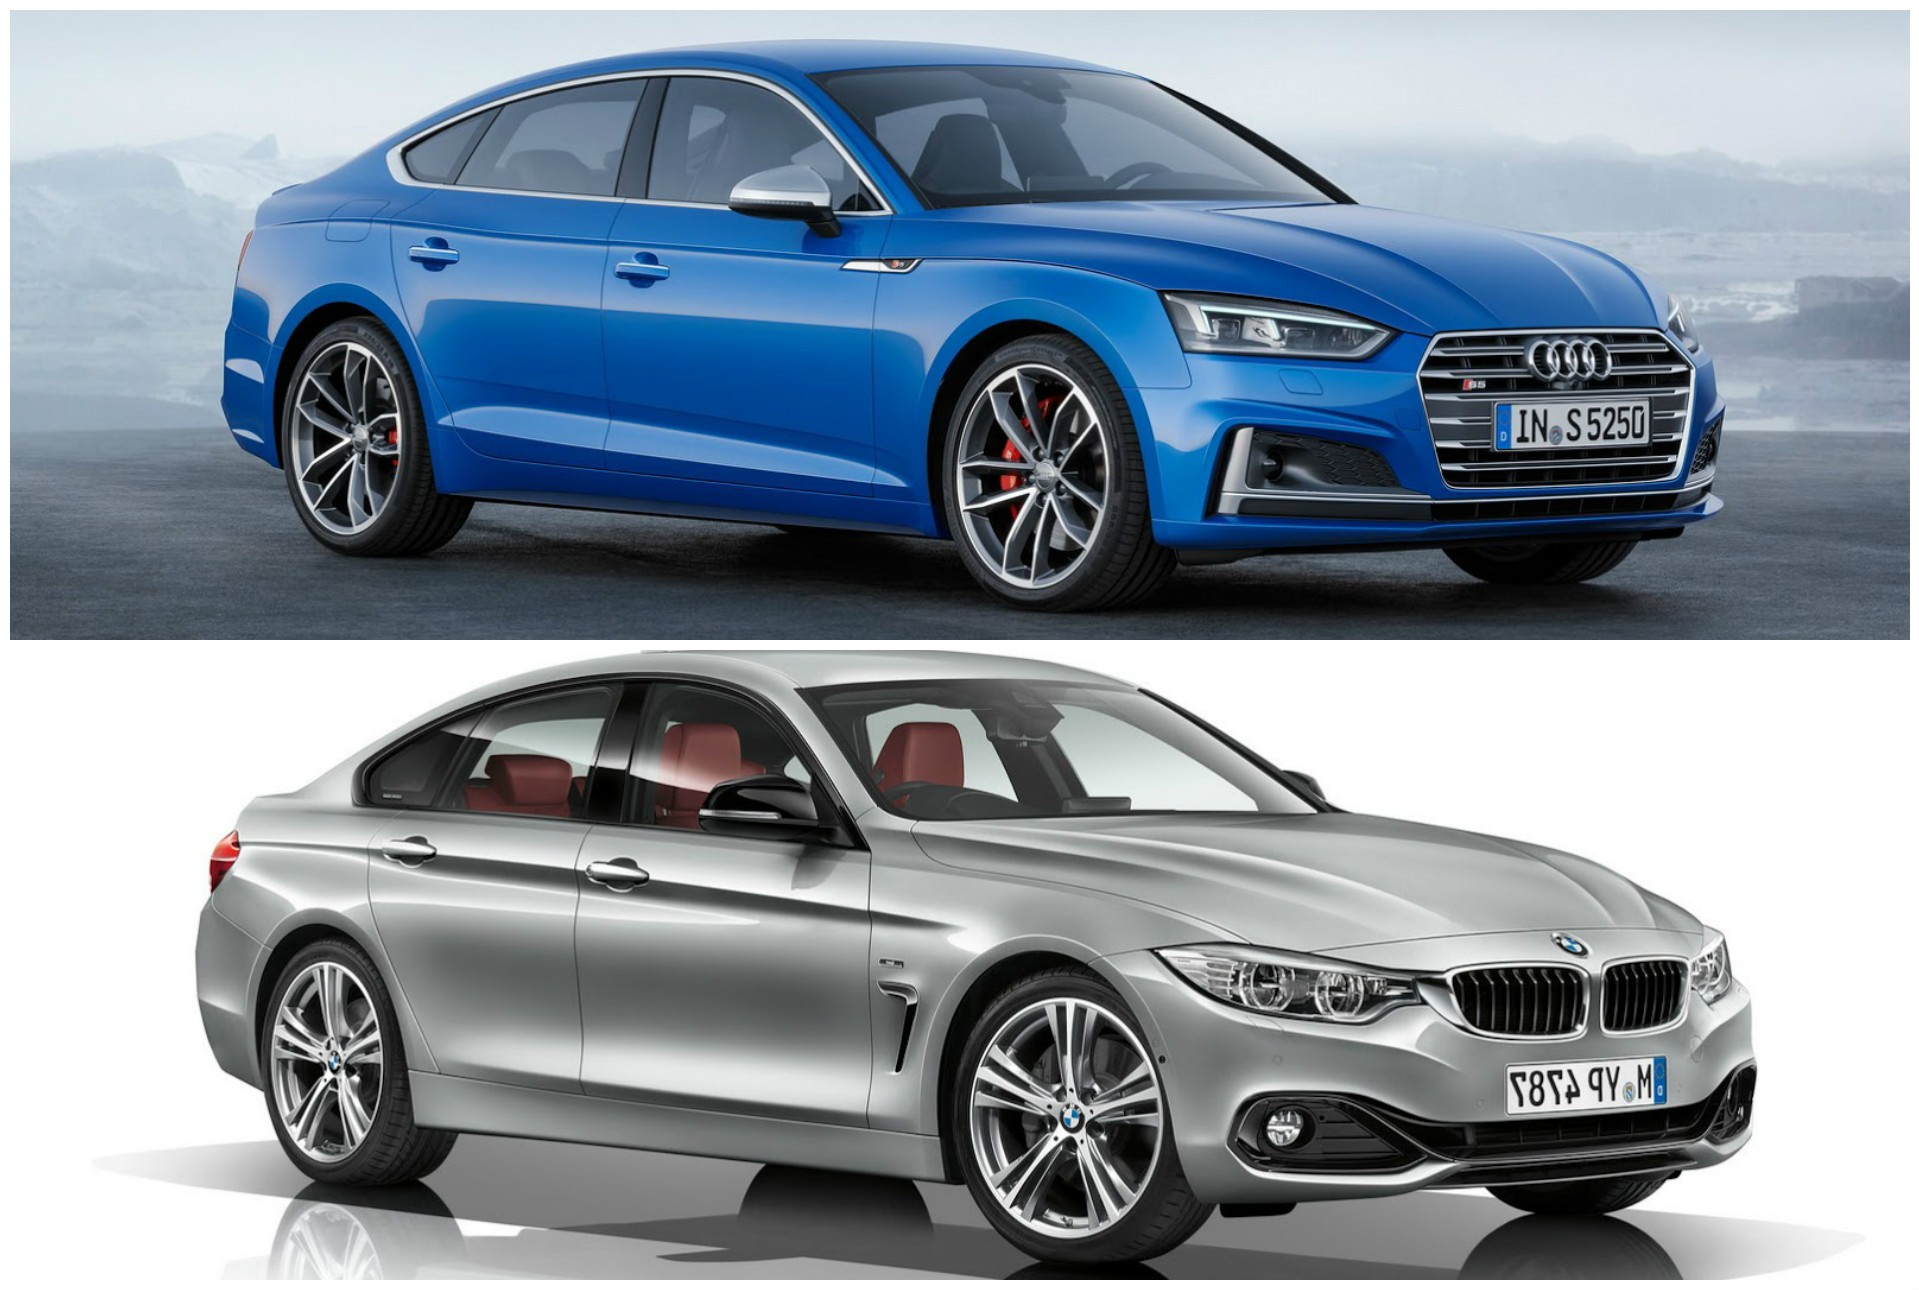 2017 audi a5 sportback vs bmw 4 series gran coupe photo comparison autoevolution. Black Bedroom Furniture Sets. Home Design Ideas